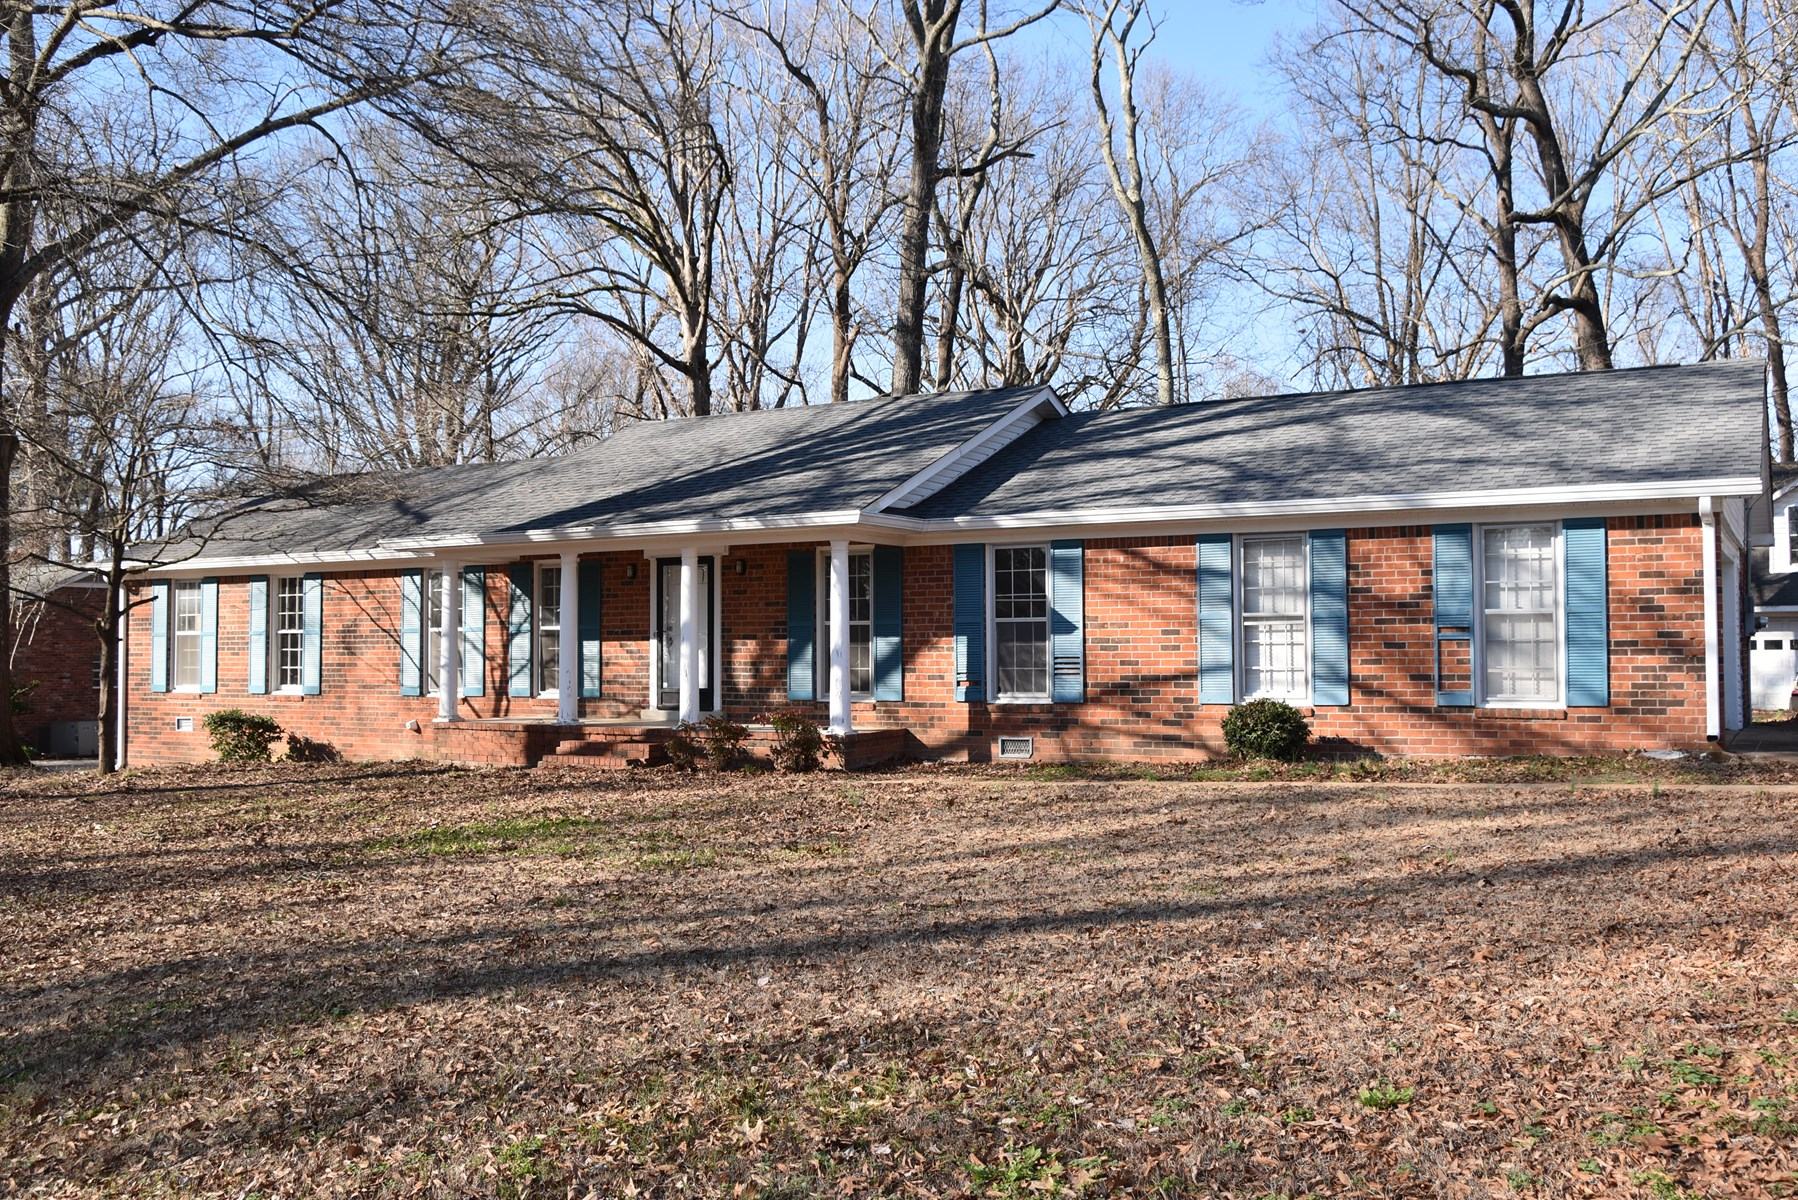 Home For Sale in Northwest Jackson, 3Br 2 Ba. Large Backyard